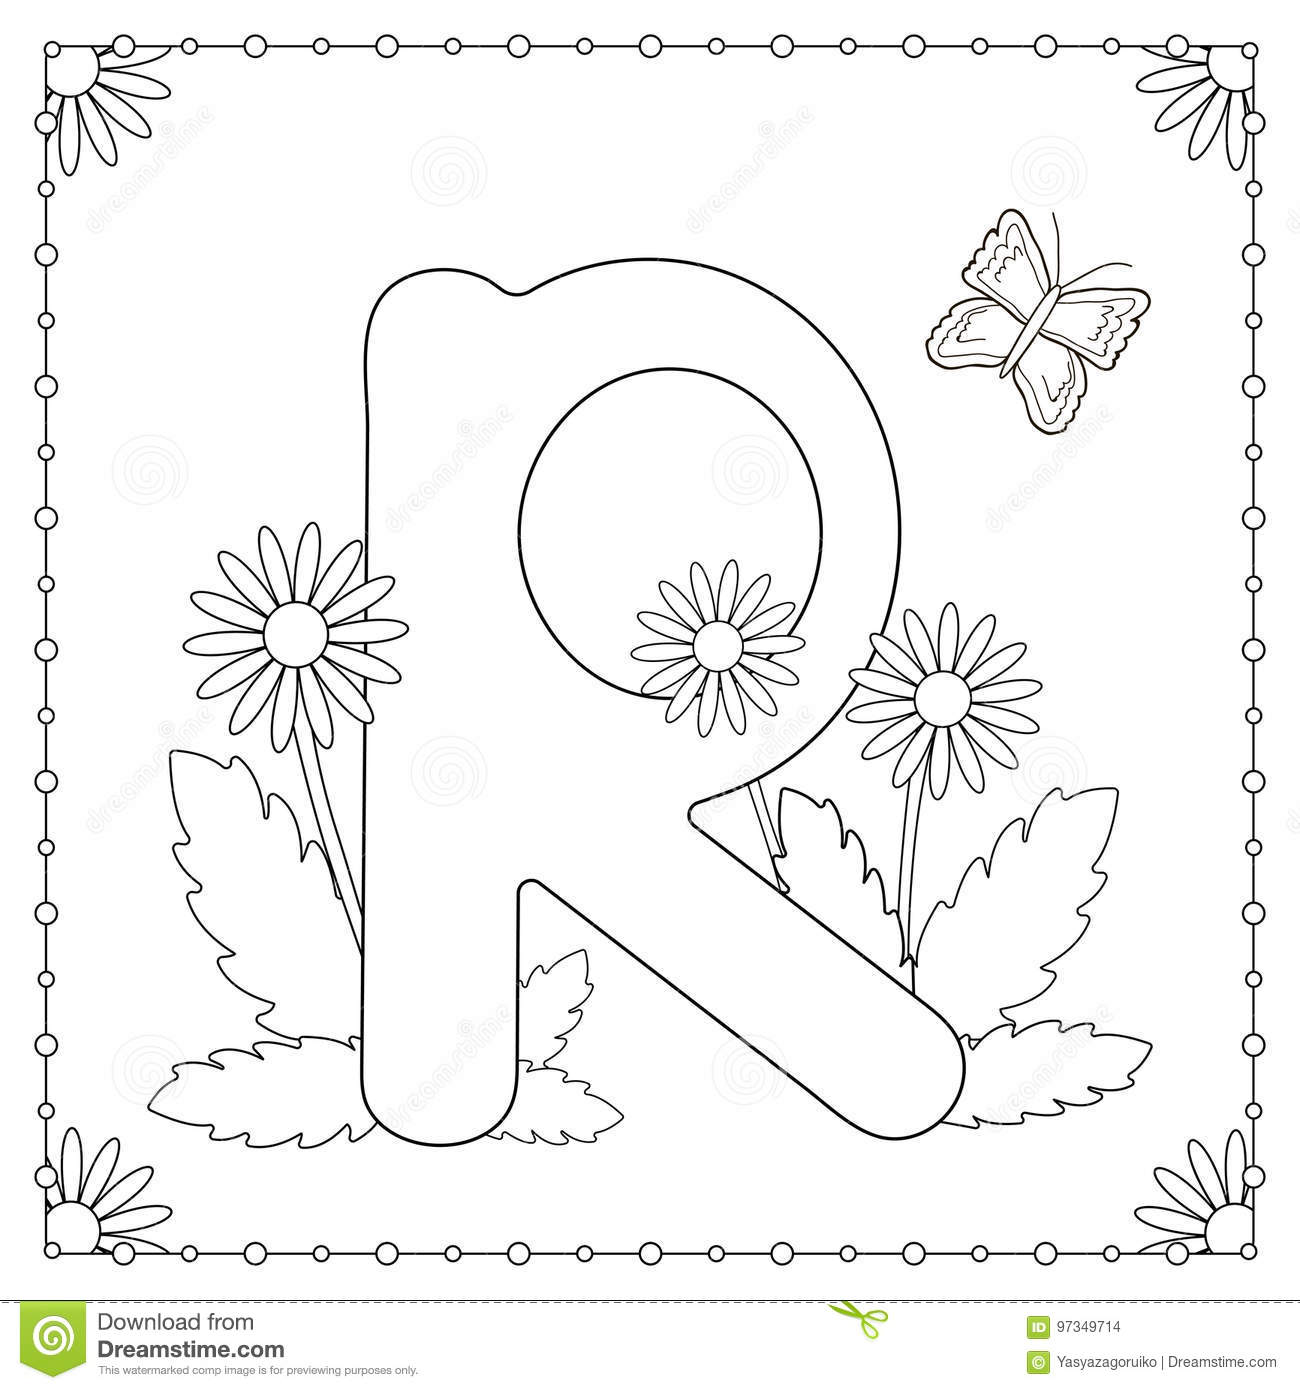 Download Alphabet Coloring Page Stock Vector Illustration Of Kids